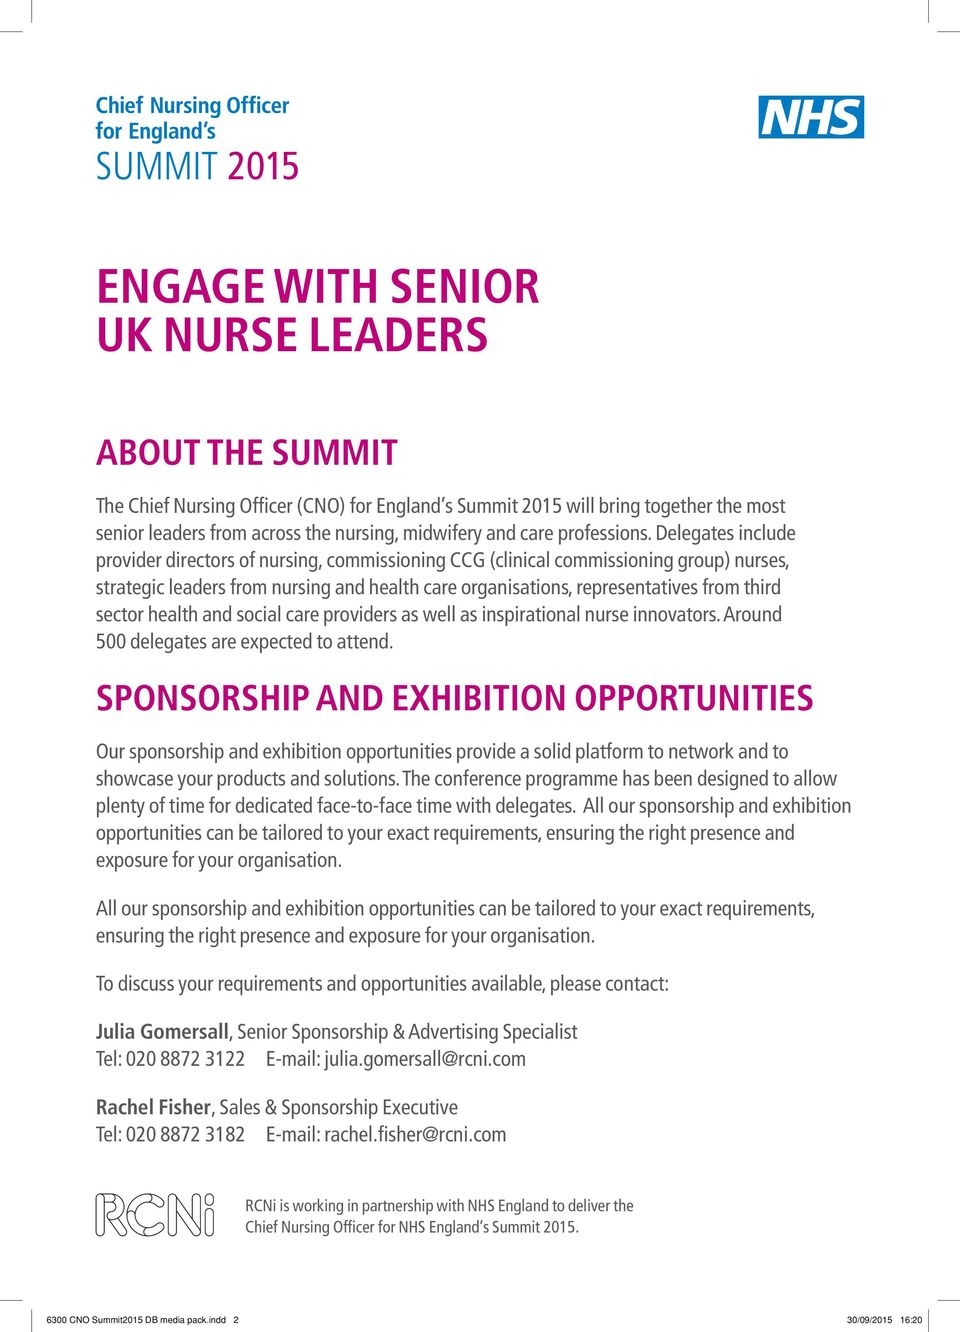 Delegates include provider directors of nursing, commissioning CCG (clinical commissioning group) nurses, strategic leaders from nursing and health care organisations, representatives from third